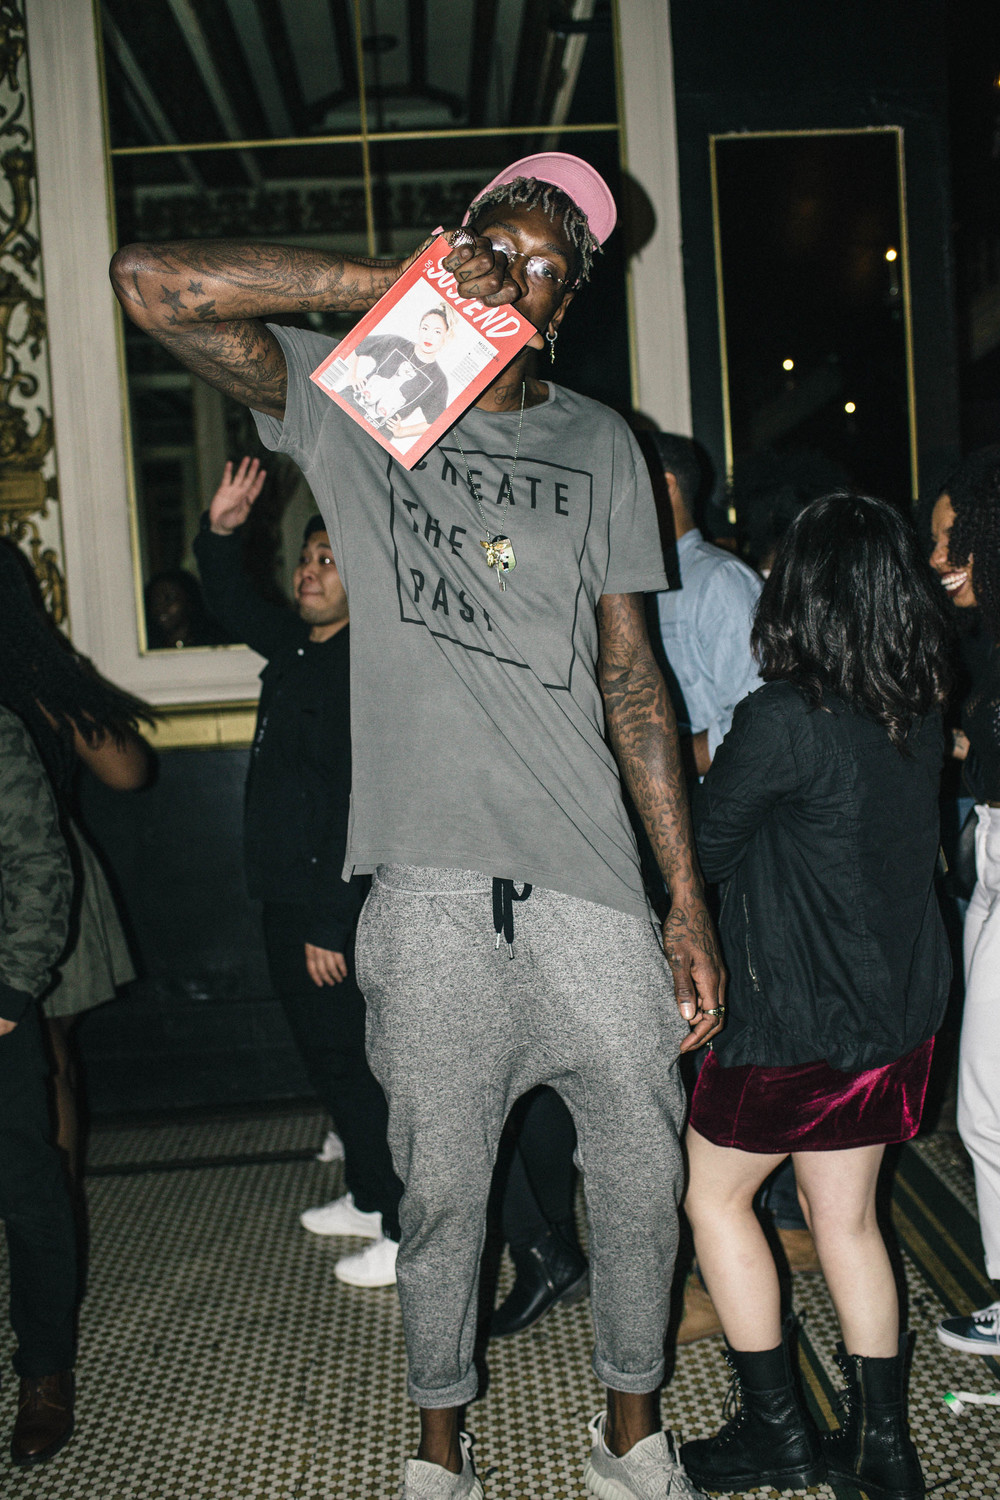 Larry Sanders at the ISSUE 06 Release Party x 10YR HLZBLZ Anniversary (Feb 11) at Globe Theater. / Photo: © Jonathan Tate for SUSPEND Magazine.